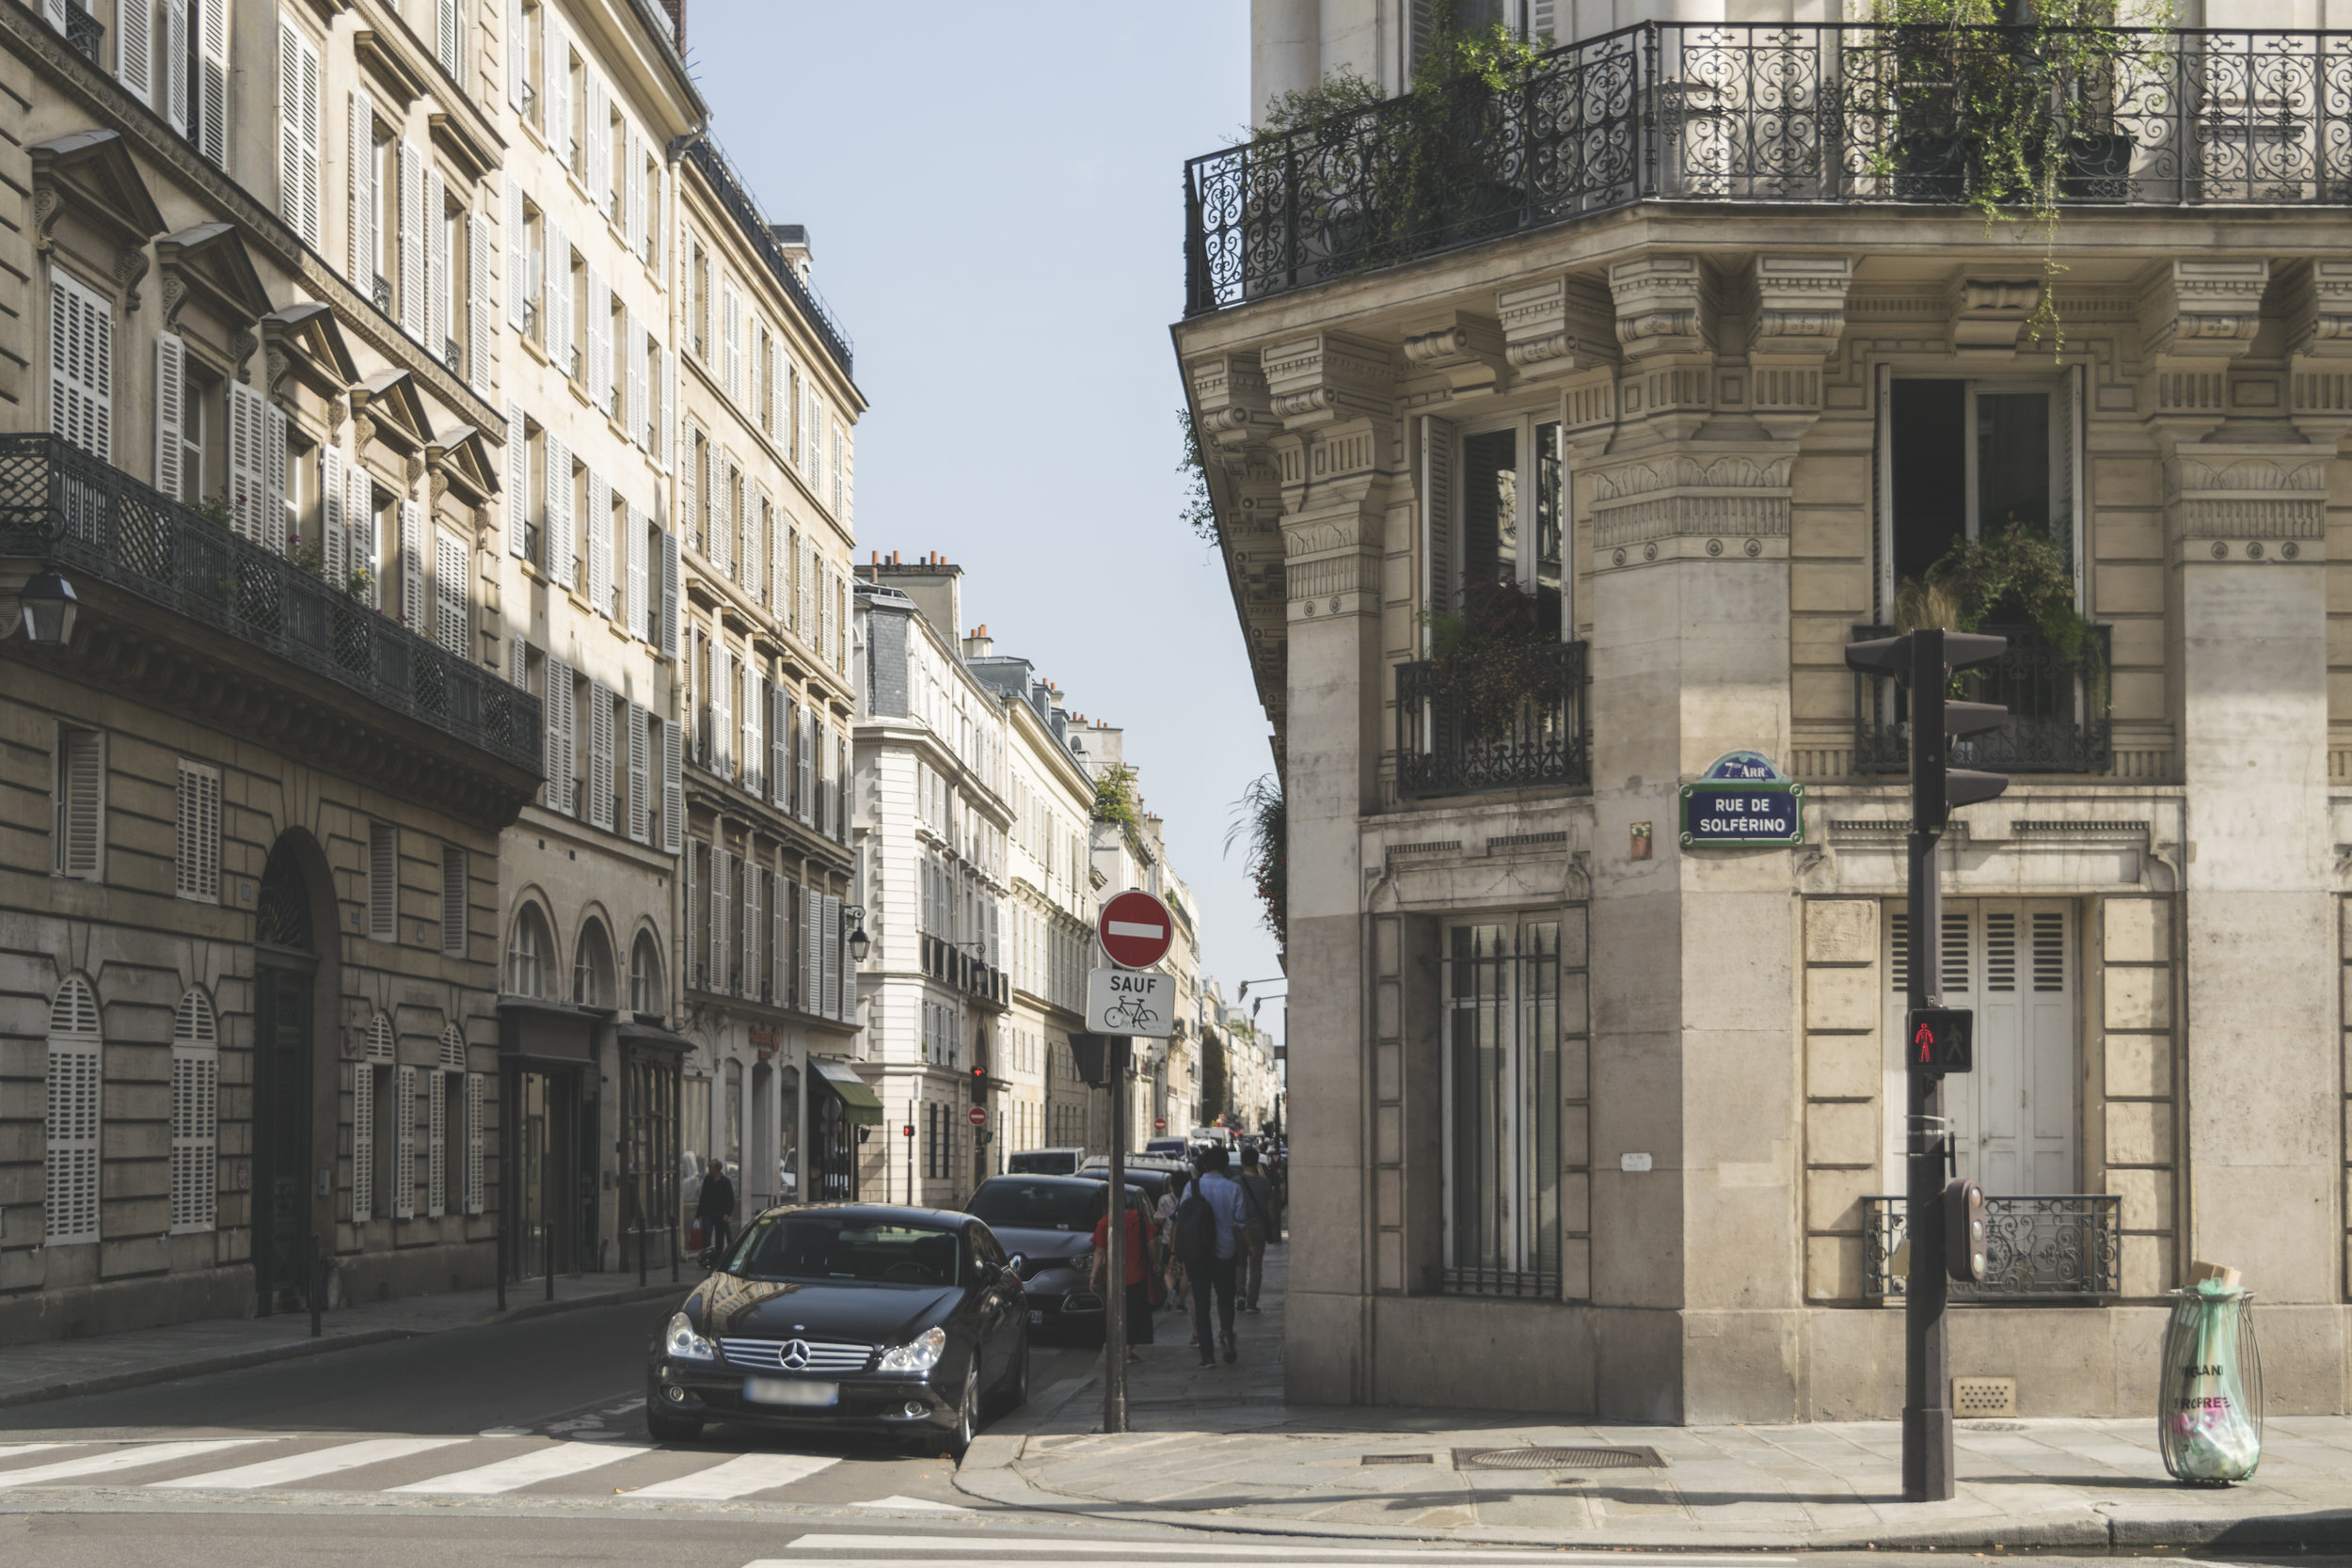 7th Arrondissement, Paris